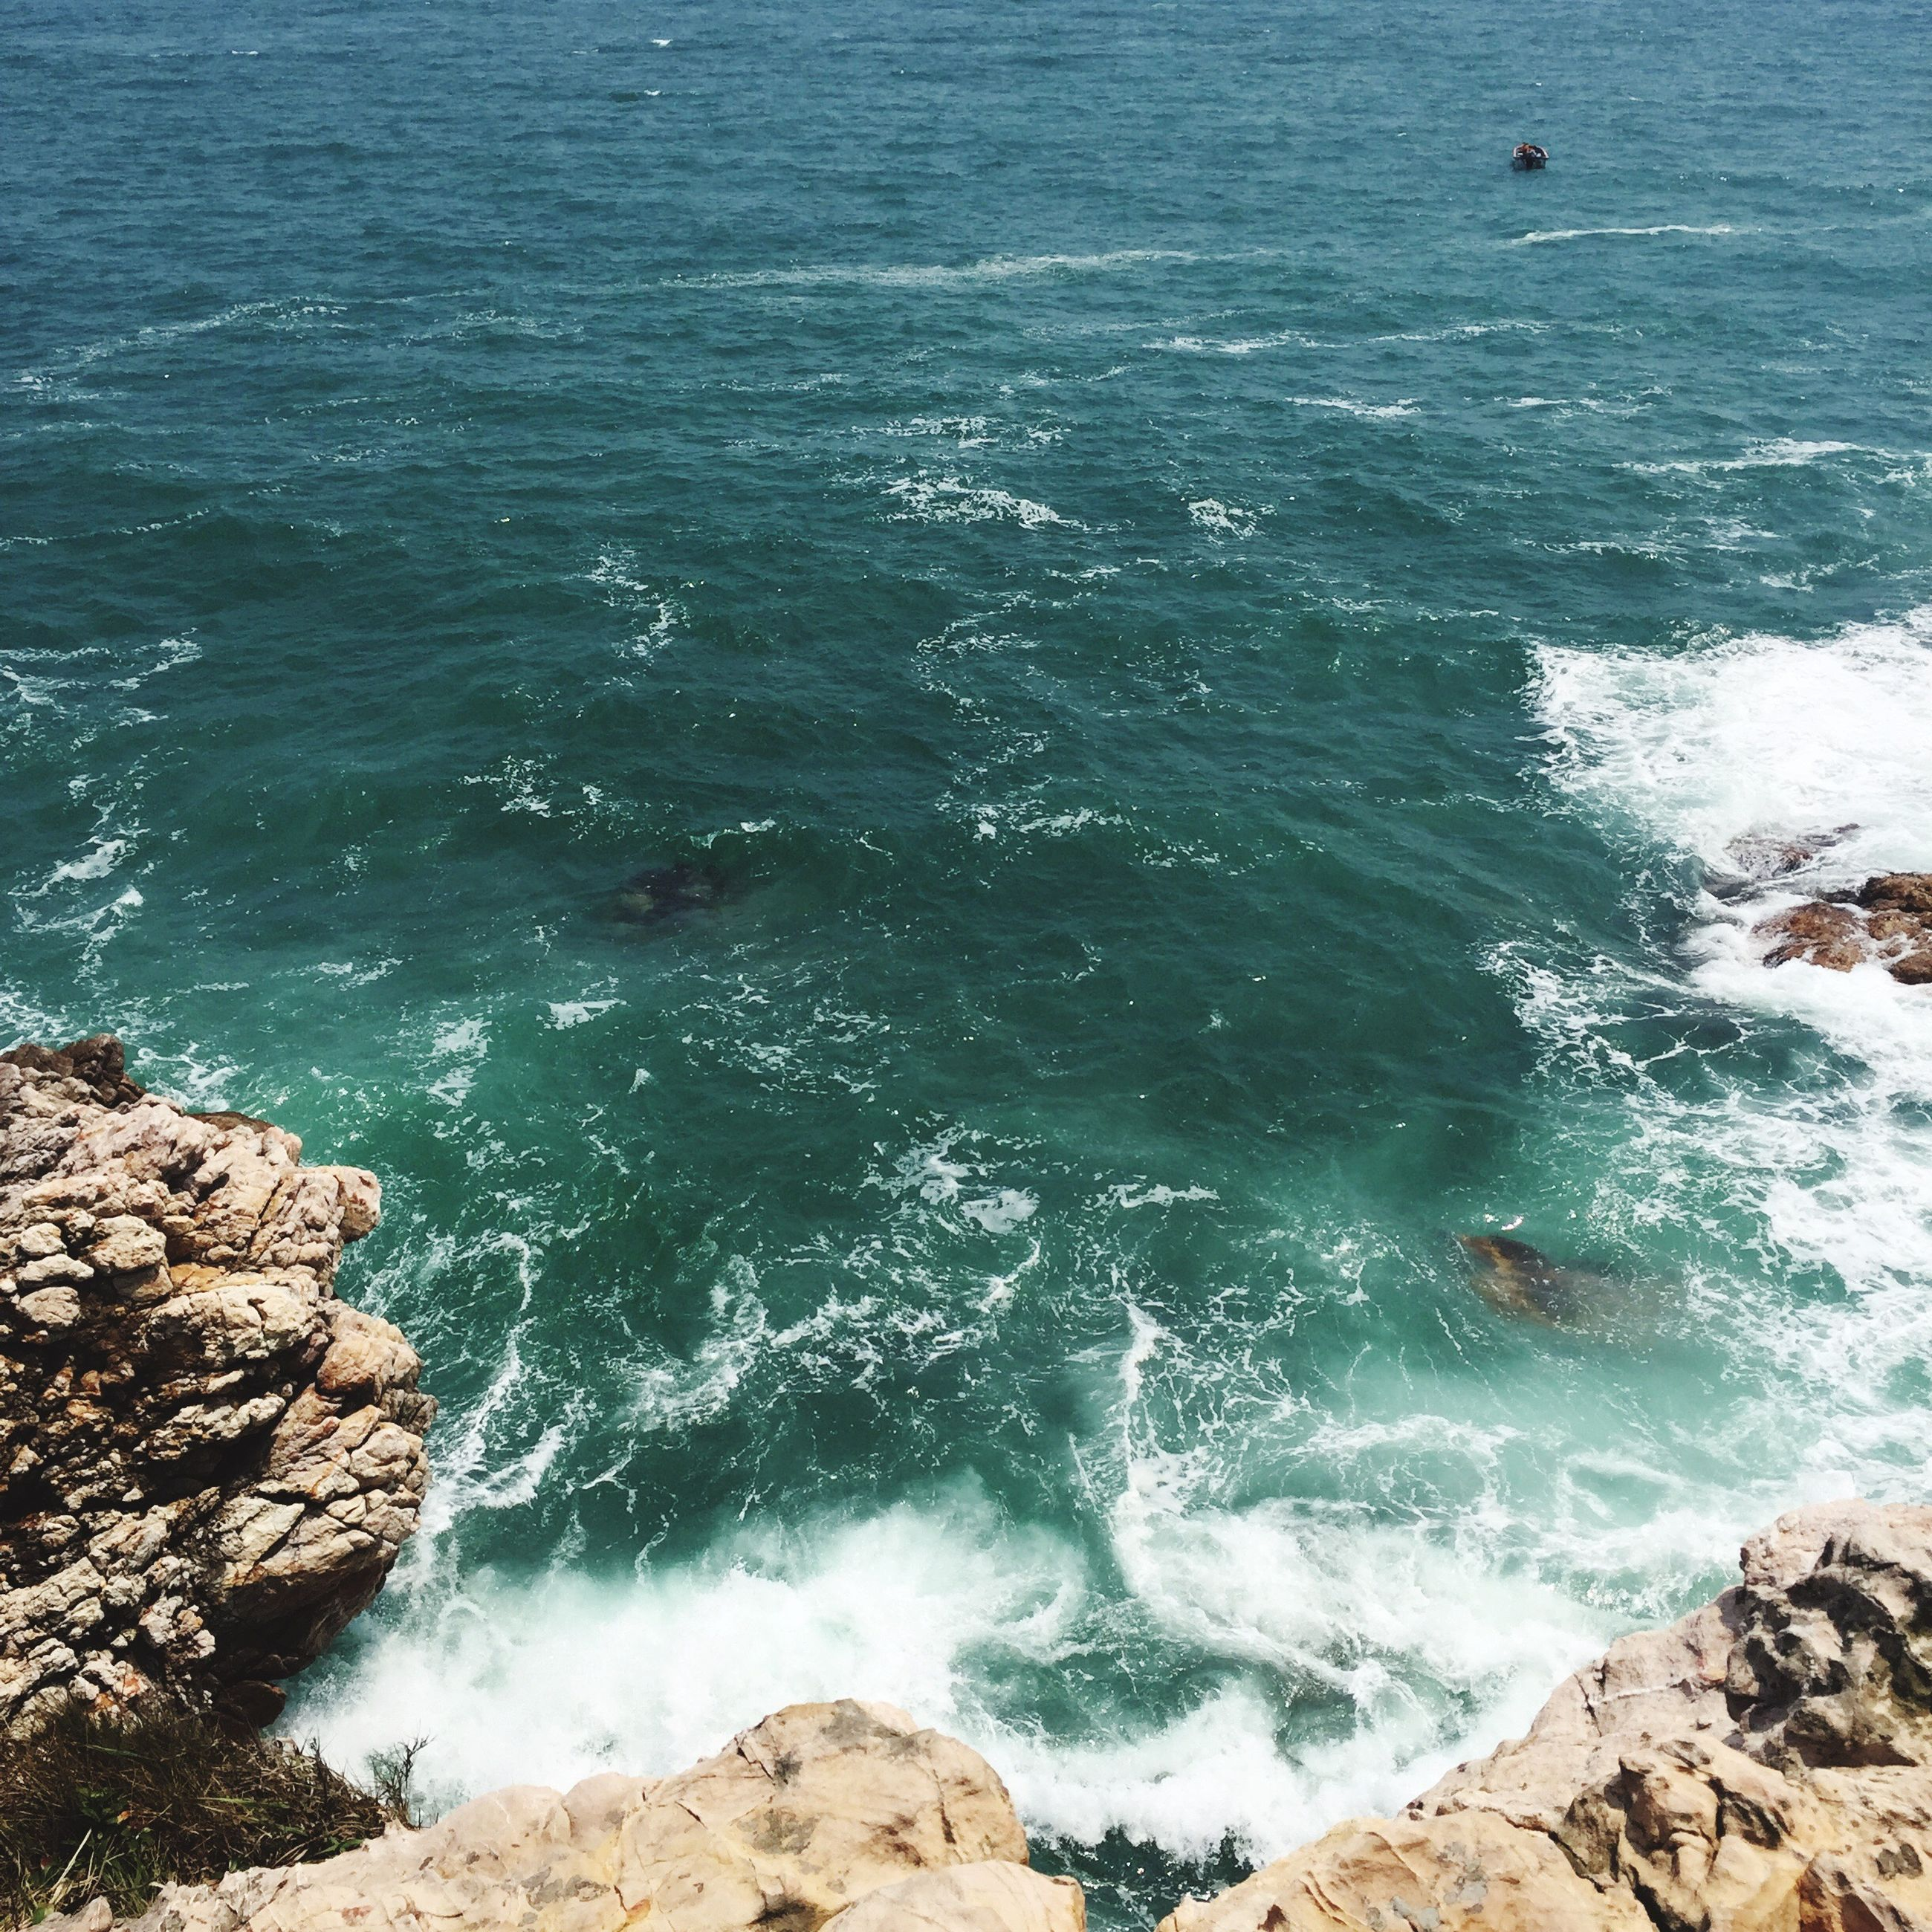 sea, water, high angle view, nature, outdoors, day, no people, beauty in nature, beach, scenics, wave, sky